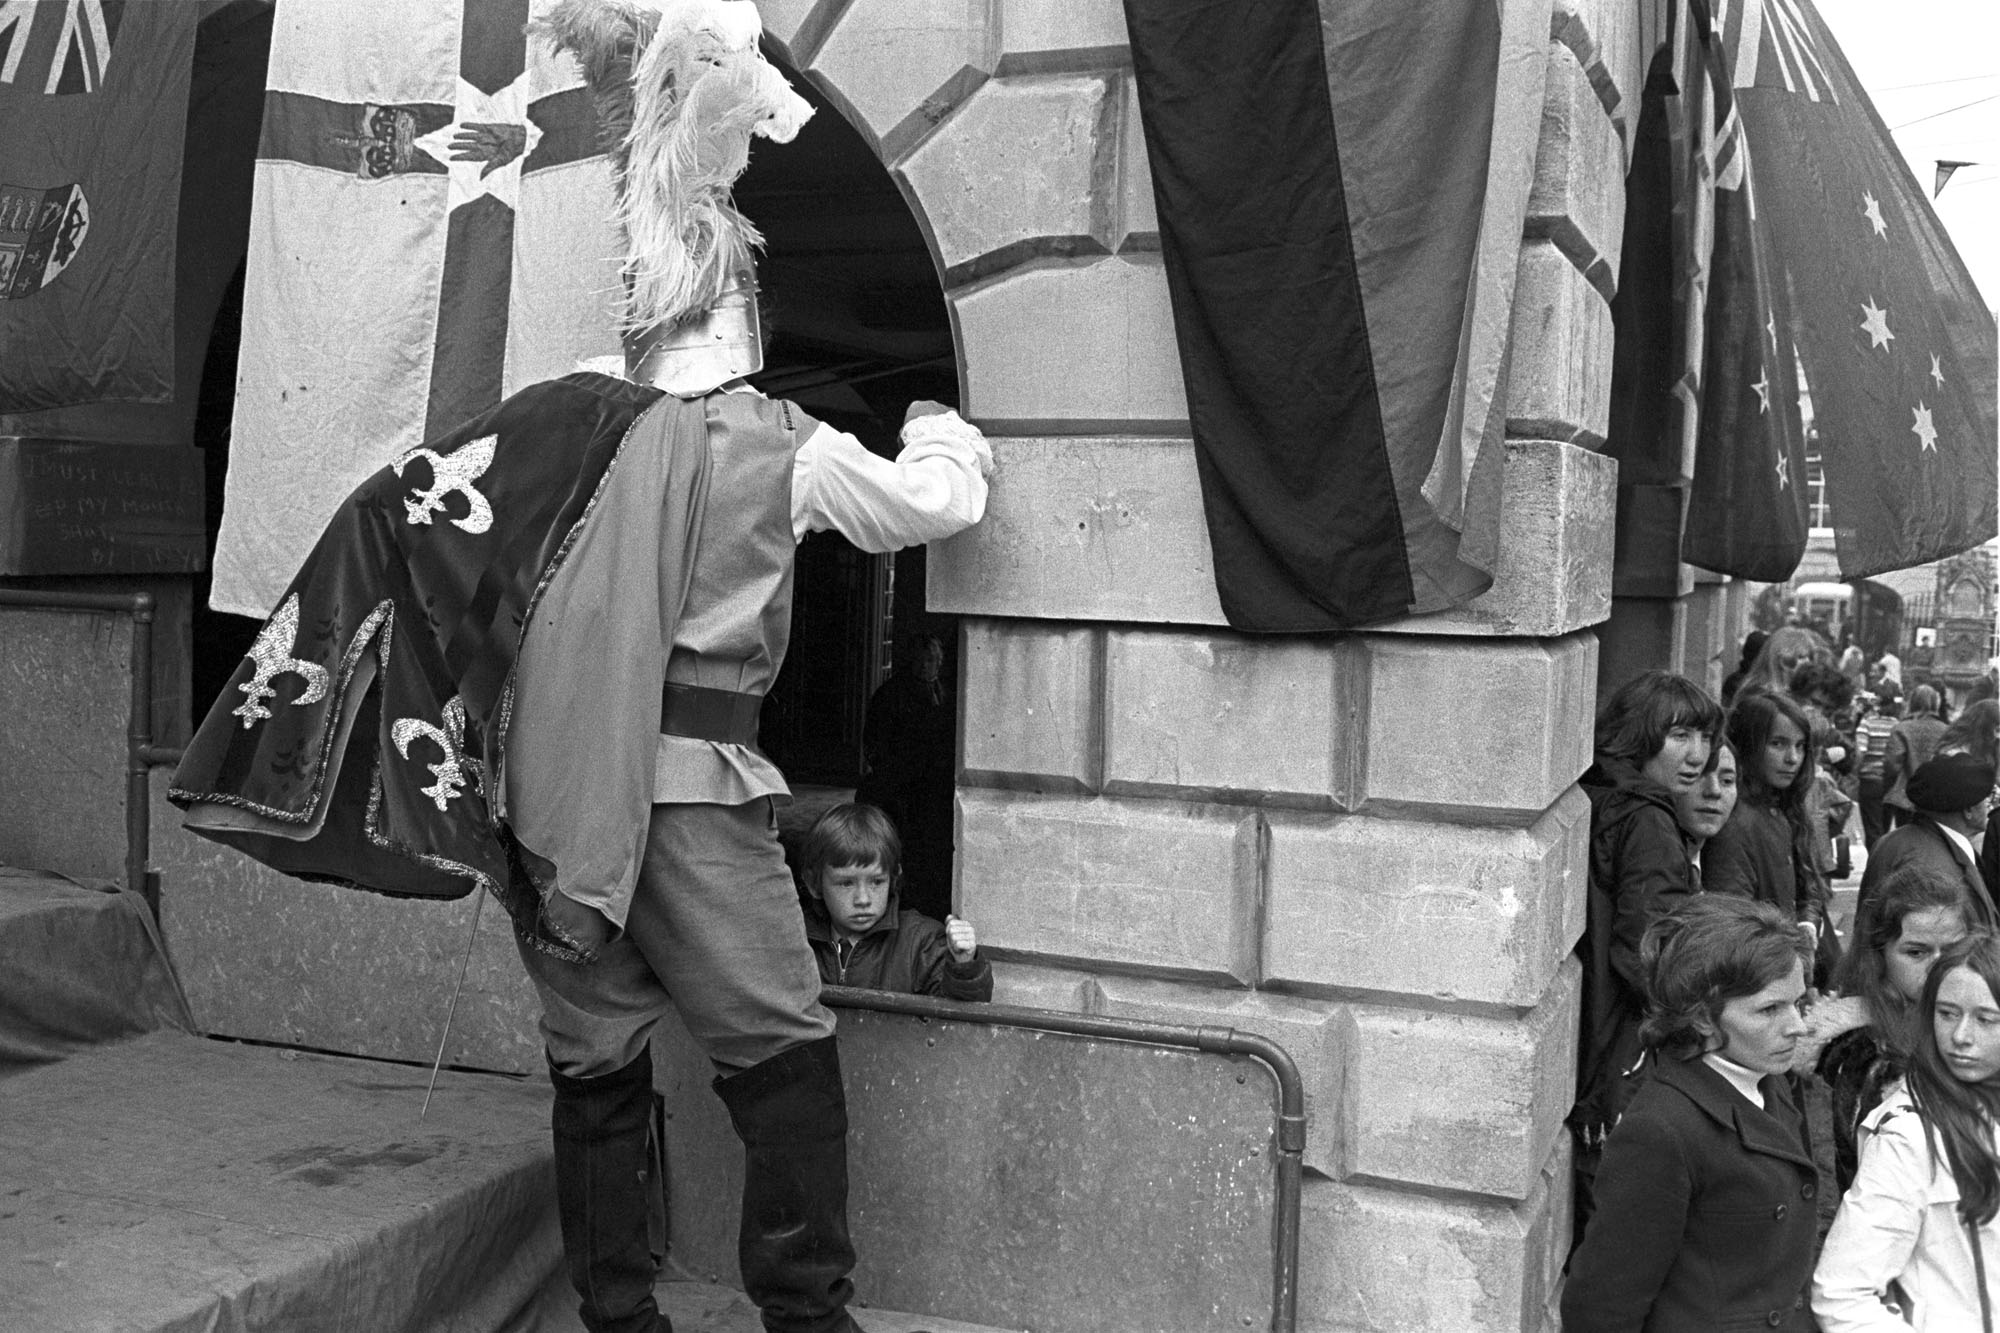 Torrington May Fair. Crowds and performers in High Street.<br /> [People at Torrington May Fair in Torrington High Street. A person dressed as a knight looking into an archway partially covered by a flag, (possibly part of the Town Hall). A child is peering out of the archway.]